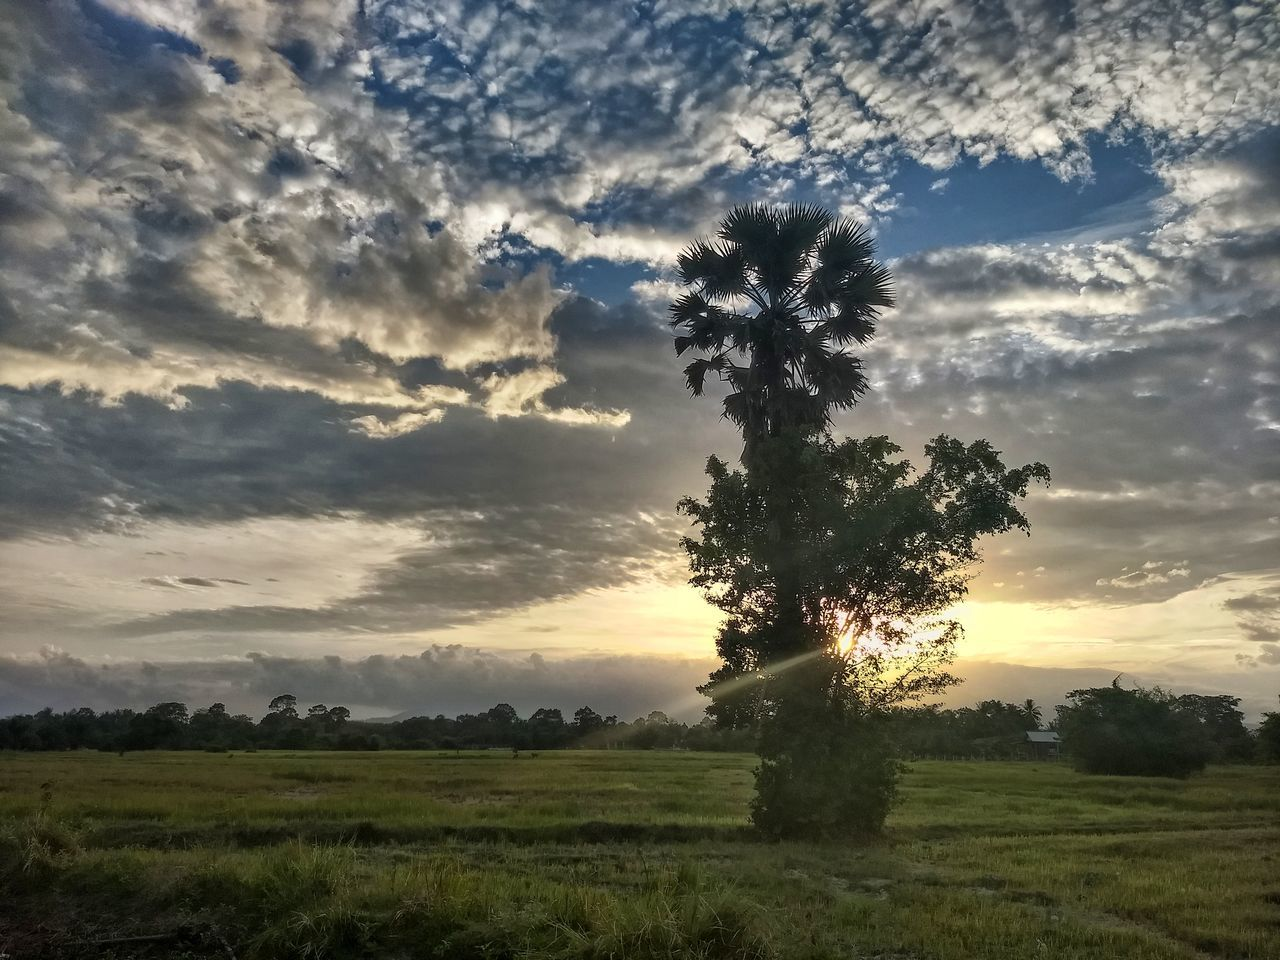 tree, field, nature, beauty in nature, tranquil scene, tranquility, sky, scenics, landscape, sunset, no people, cloud - sky, growth, agriculture, grass, outdoors, day